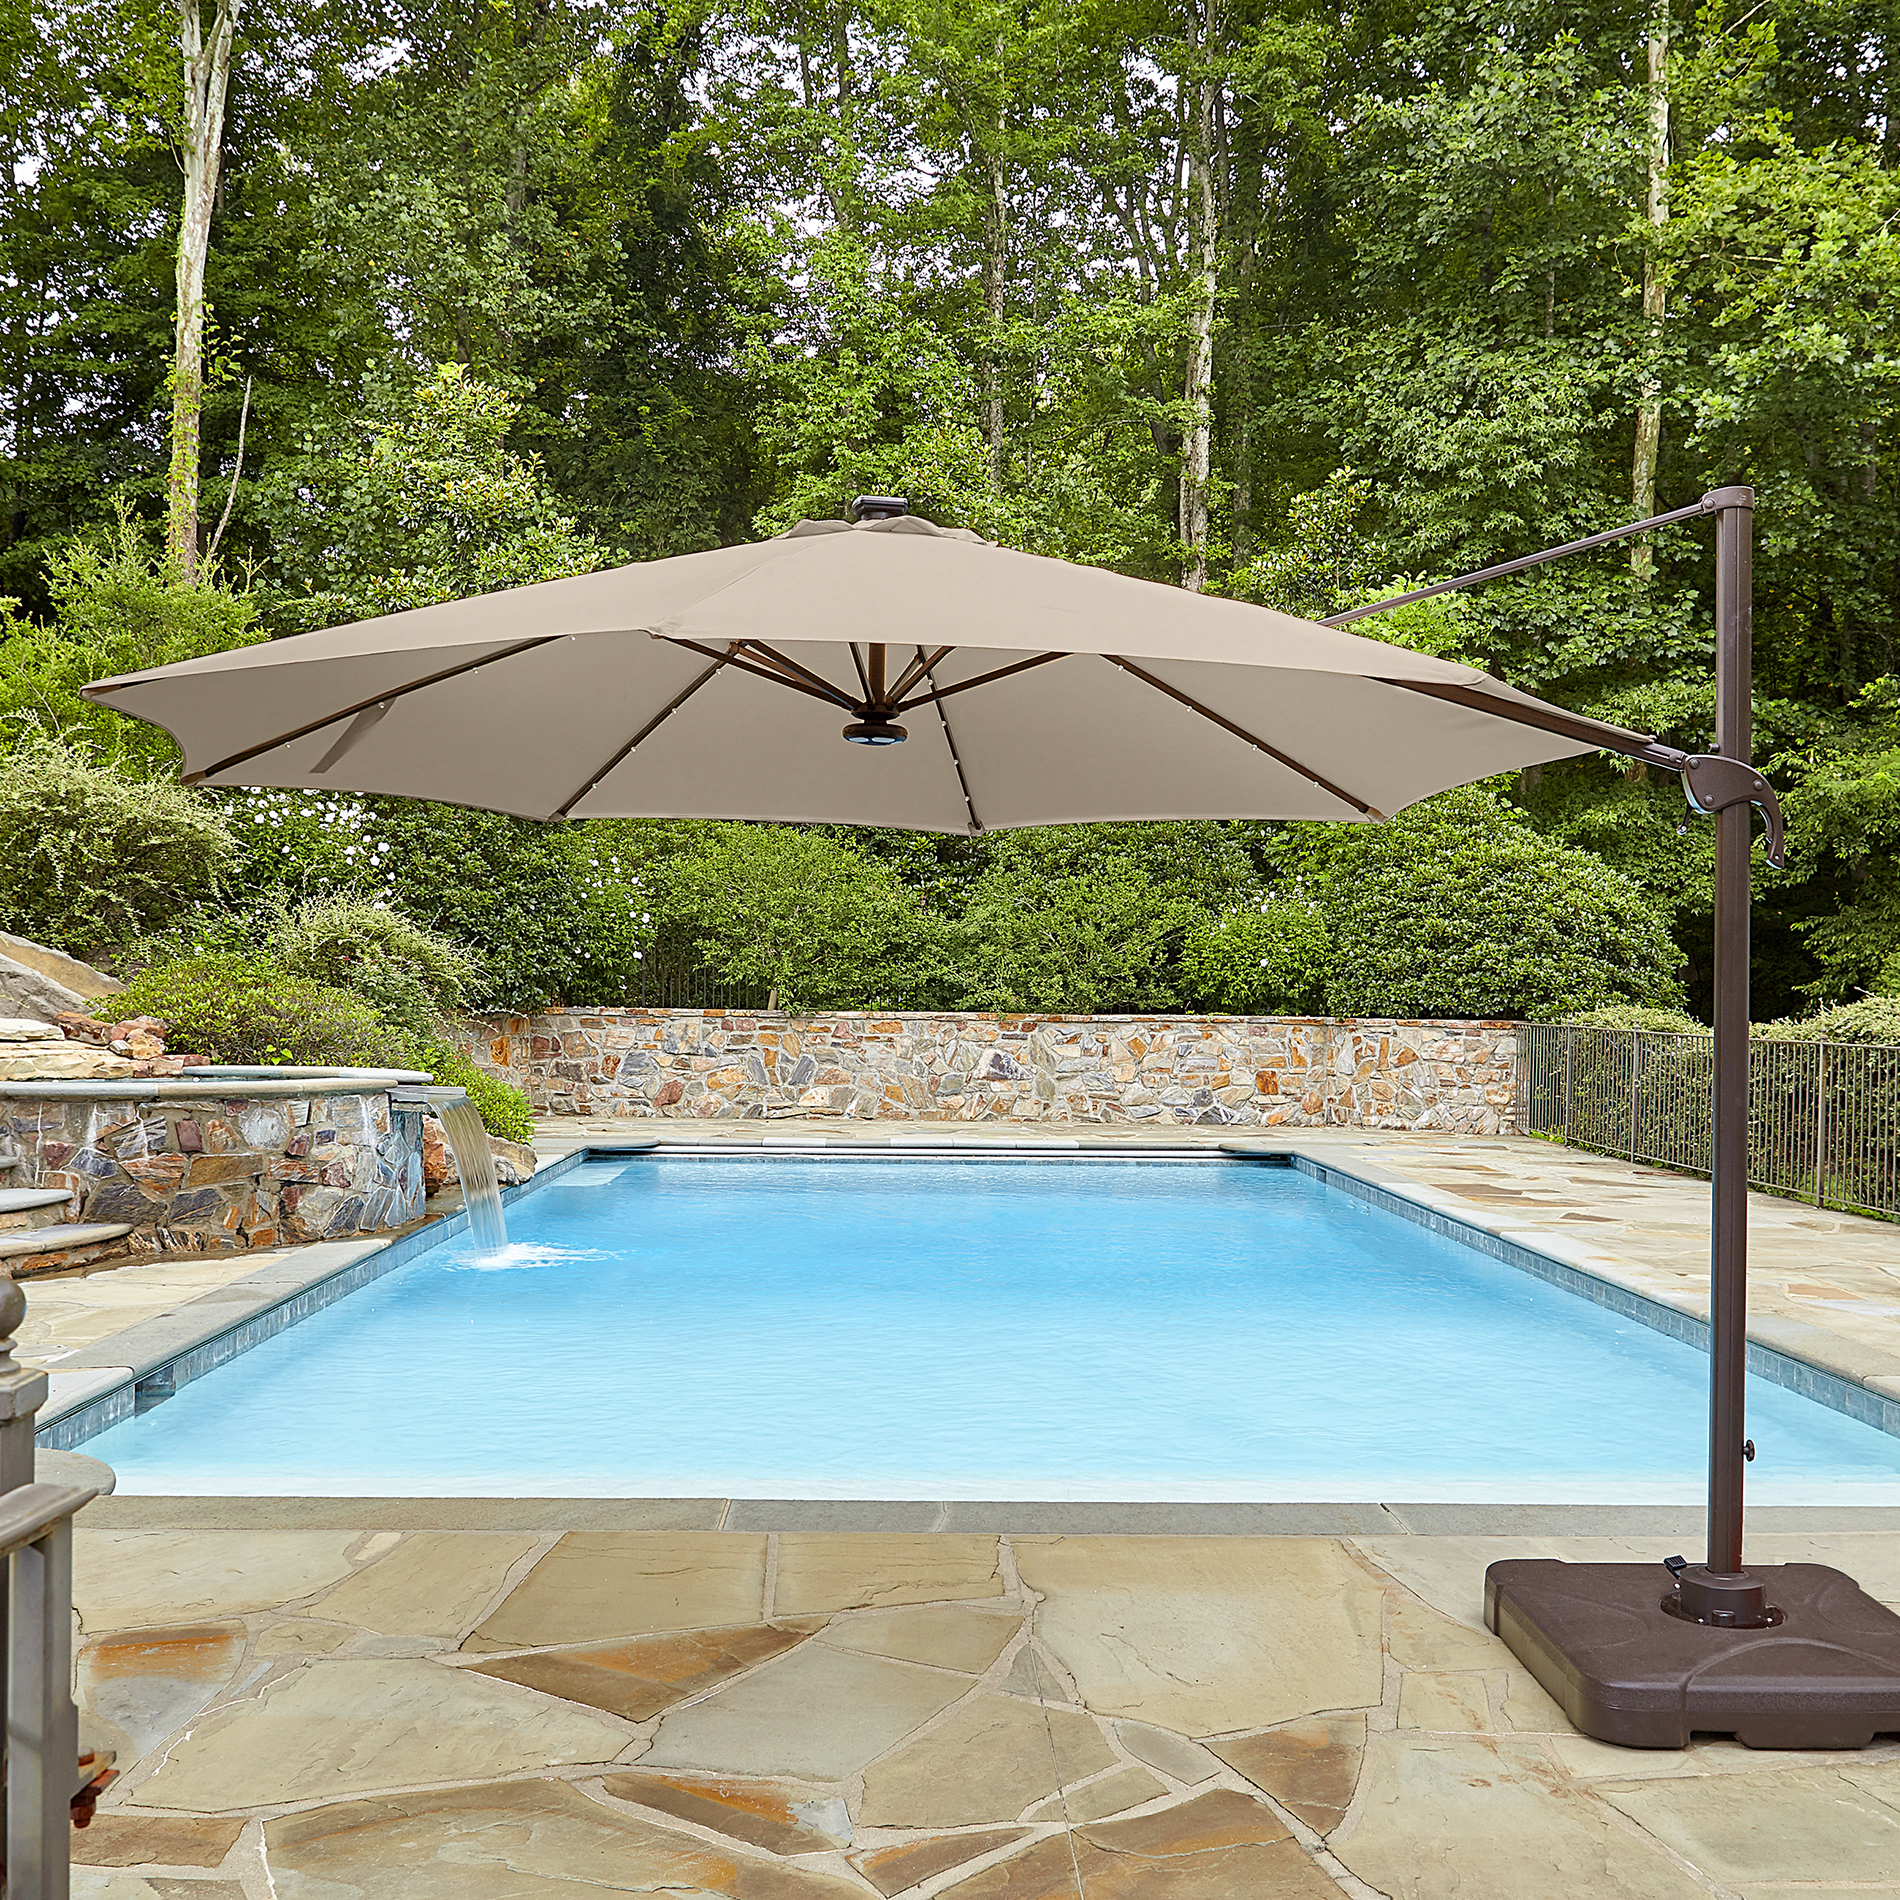 Garden Oasis 11 Ft Solar Powered Bluetooth and Lighted Offset Umbrella